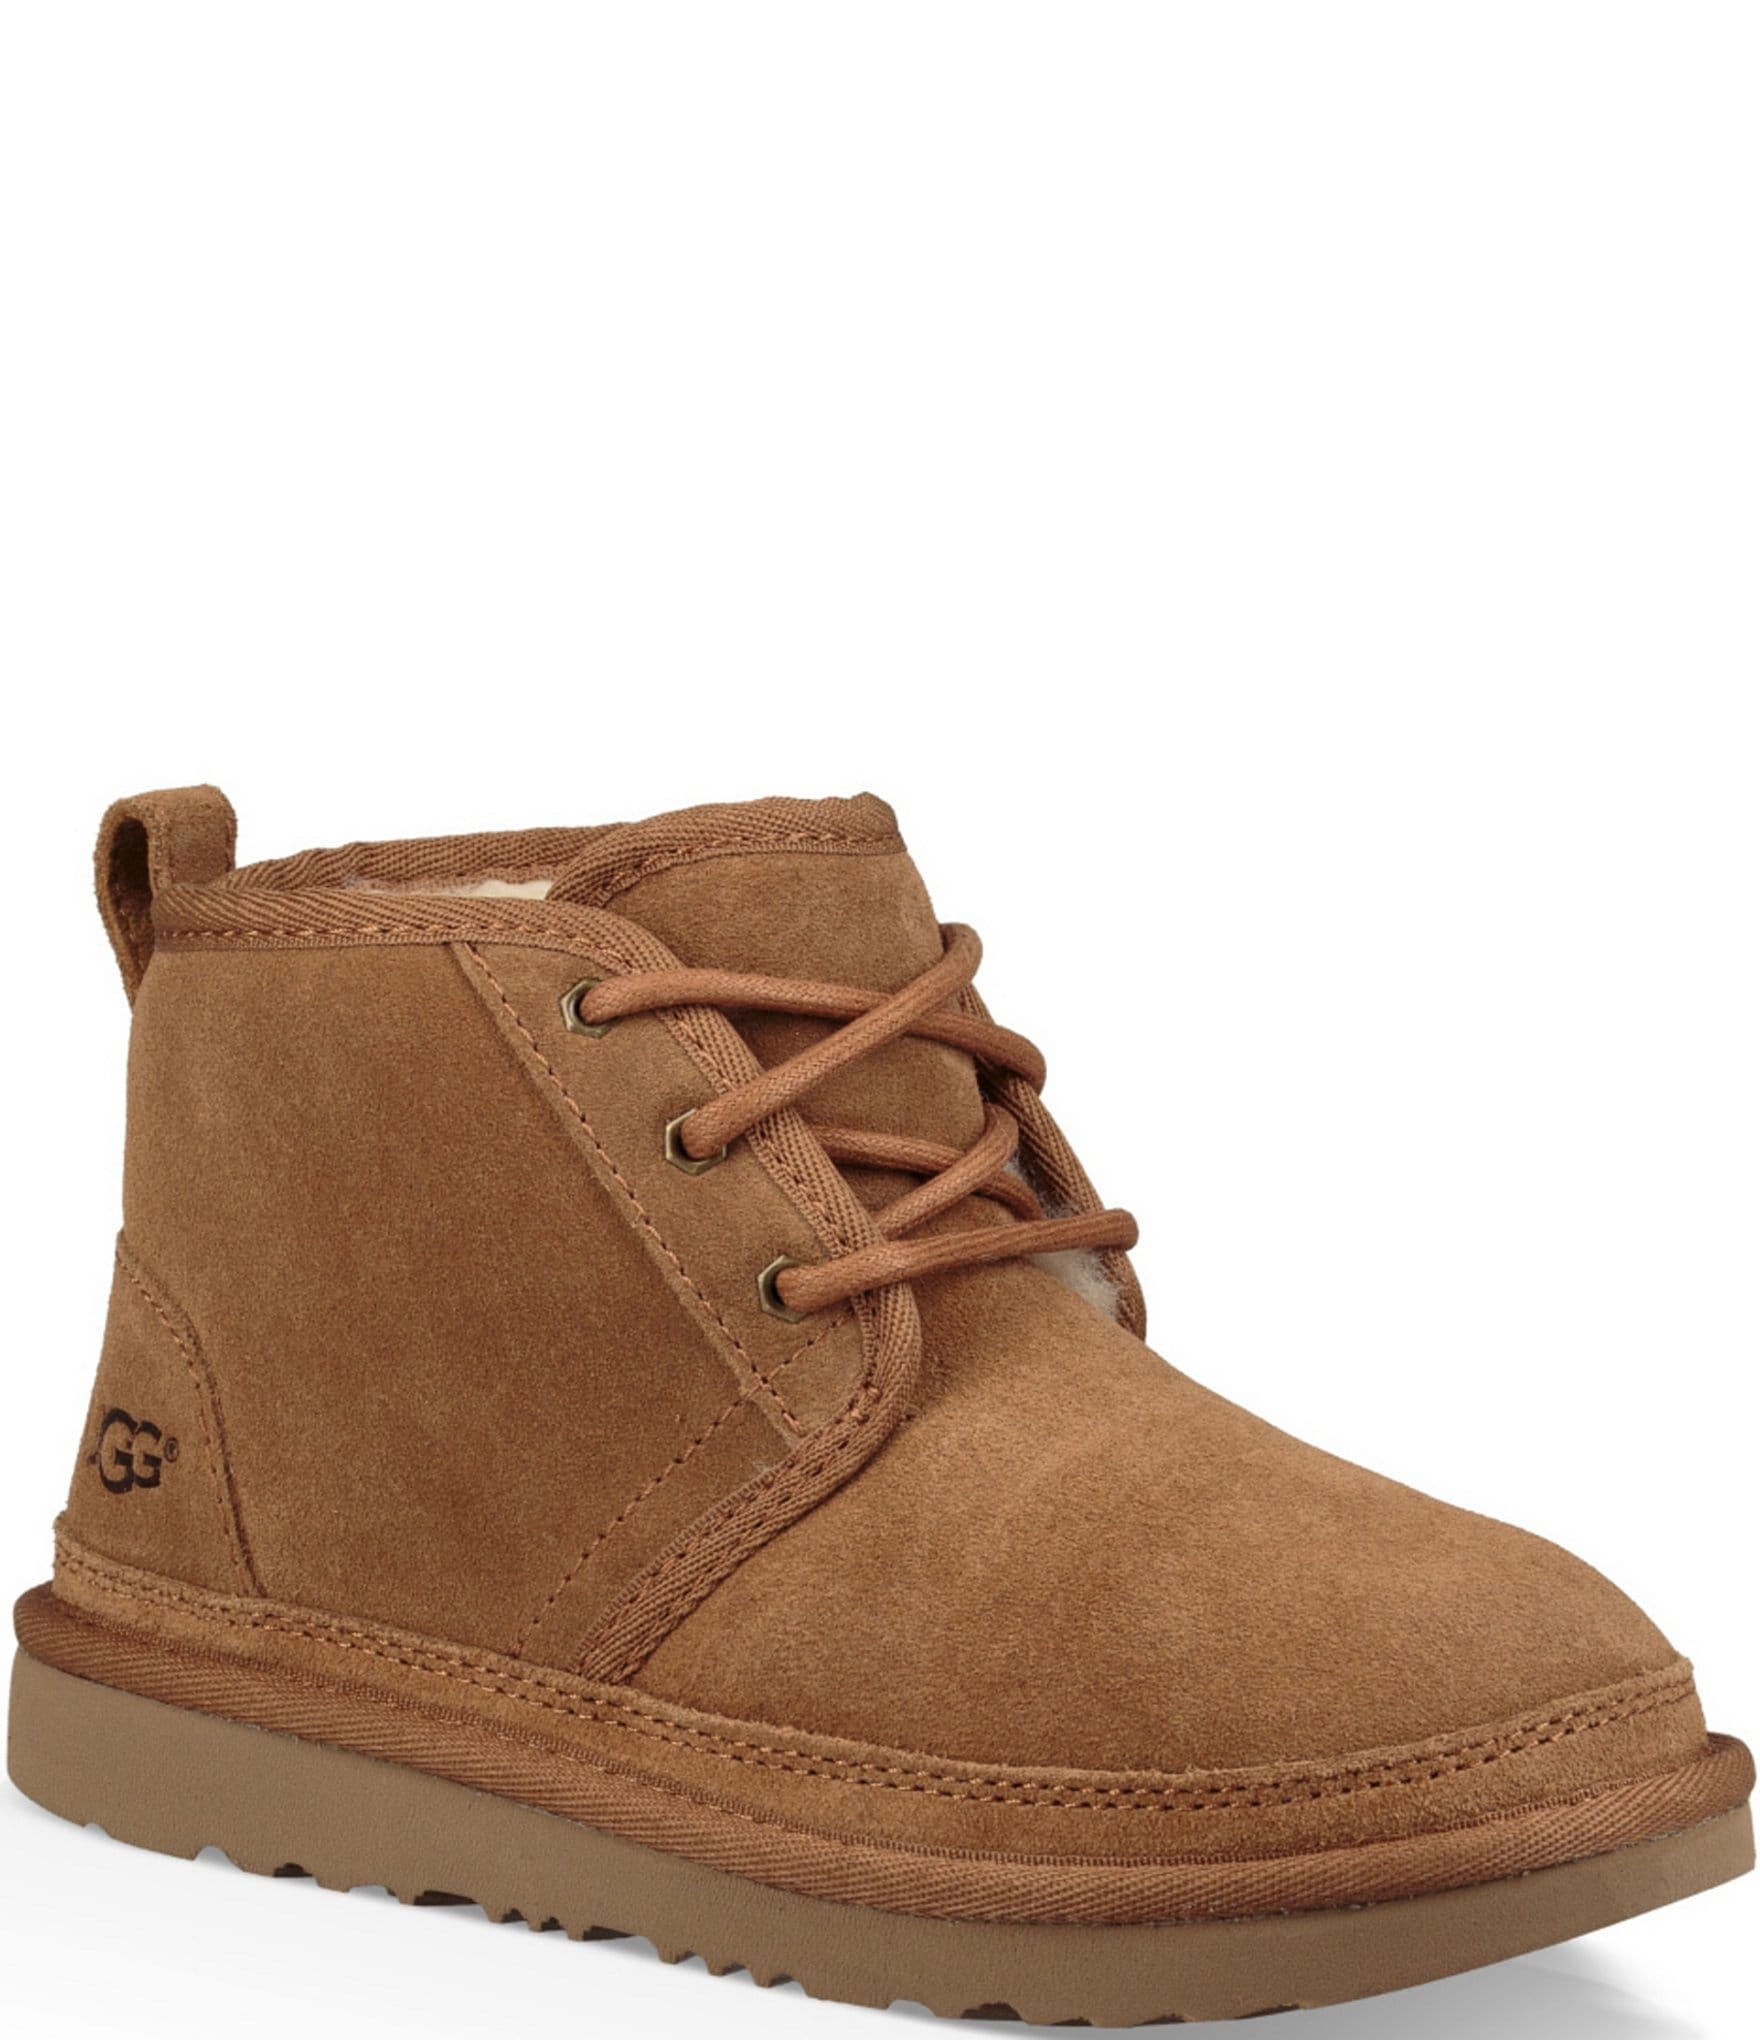 Buy UGG Australia Women's Classic Tall and other Shoes at bauernhoftester.ml Our wide selection is eligible for free shipping and free returns.